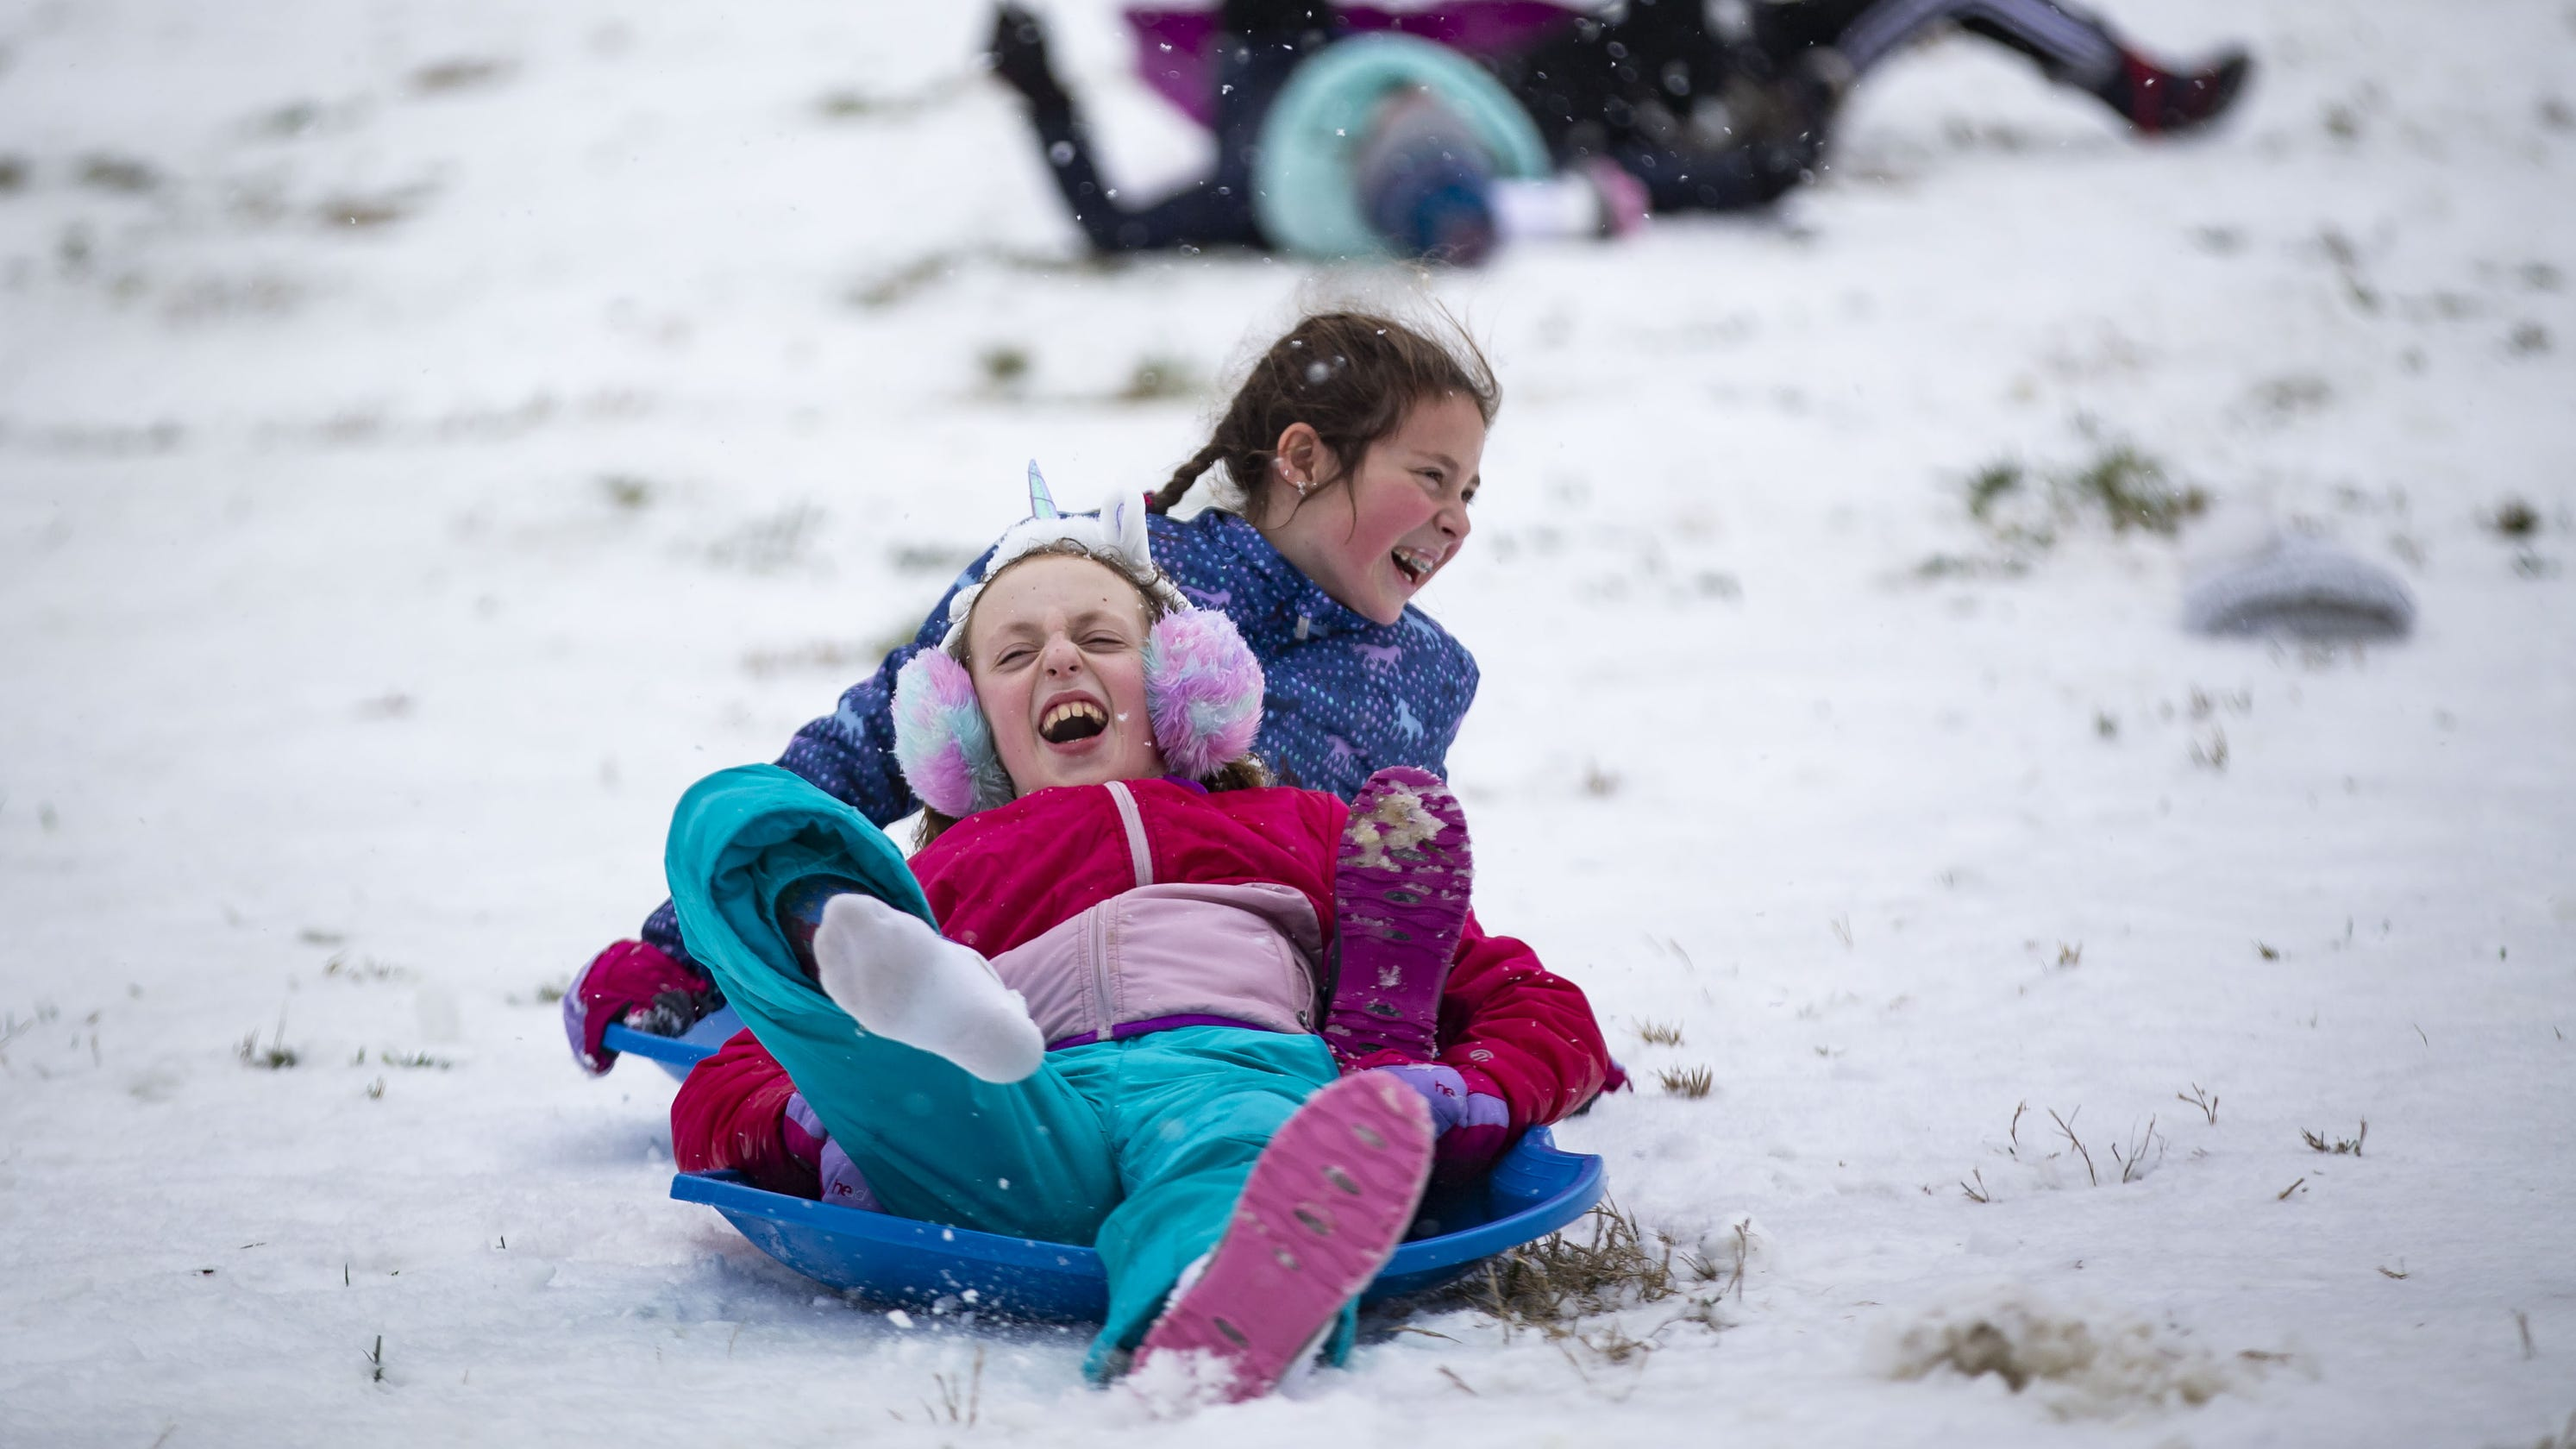 'The days off were magic': What kids lose when they lose snow days